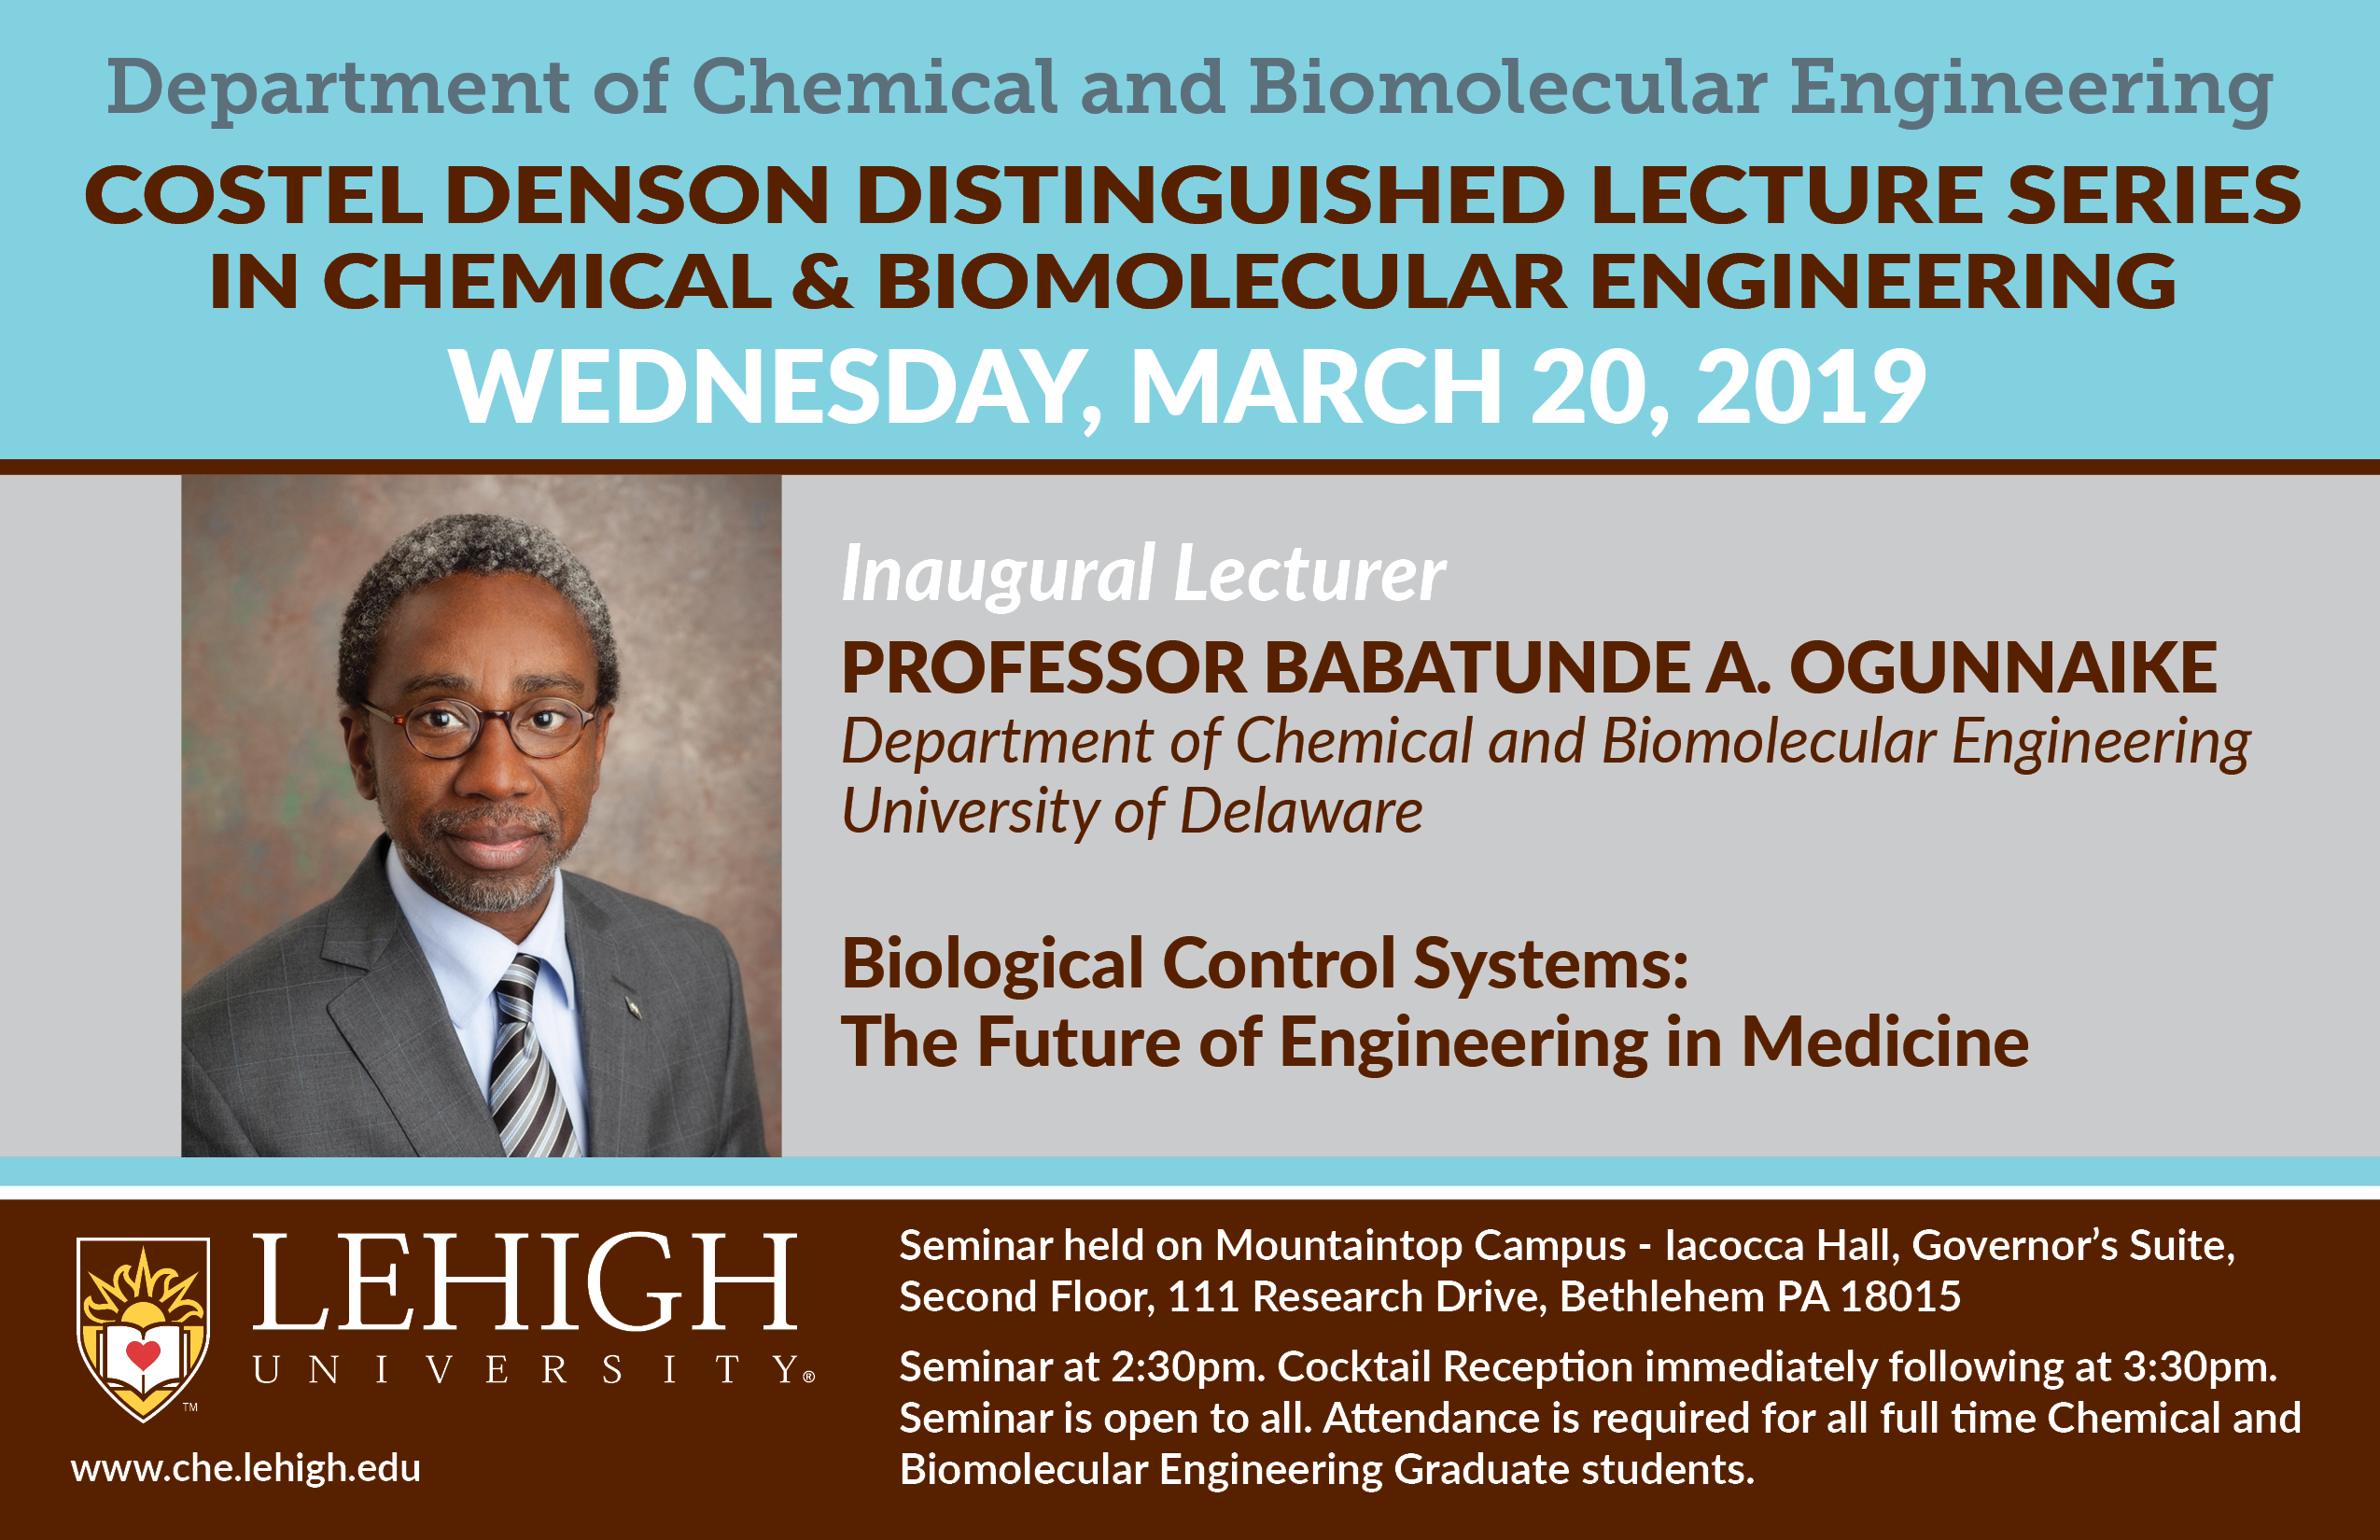 Costel Denson Distinguished Lecture Series